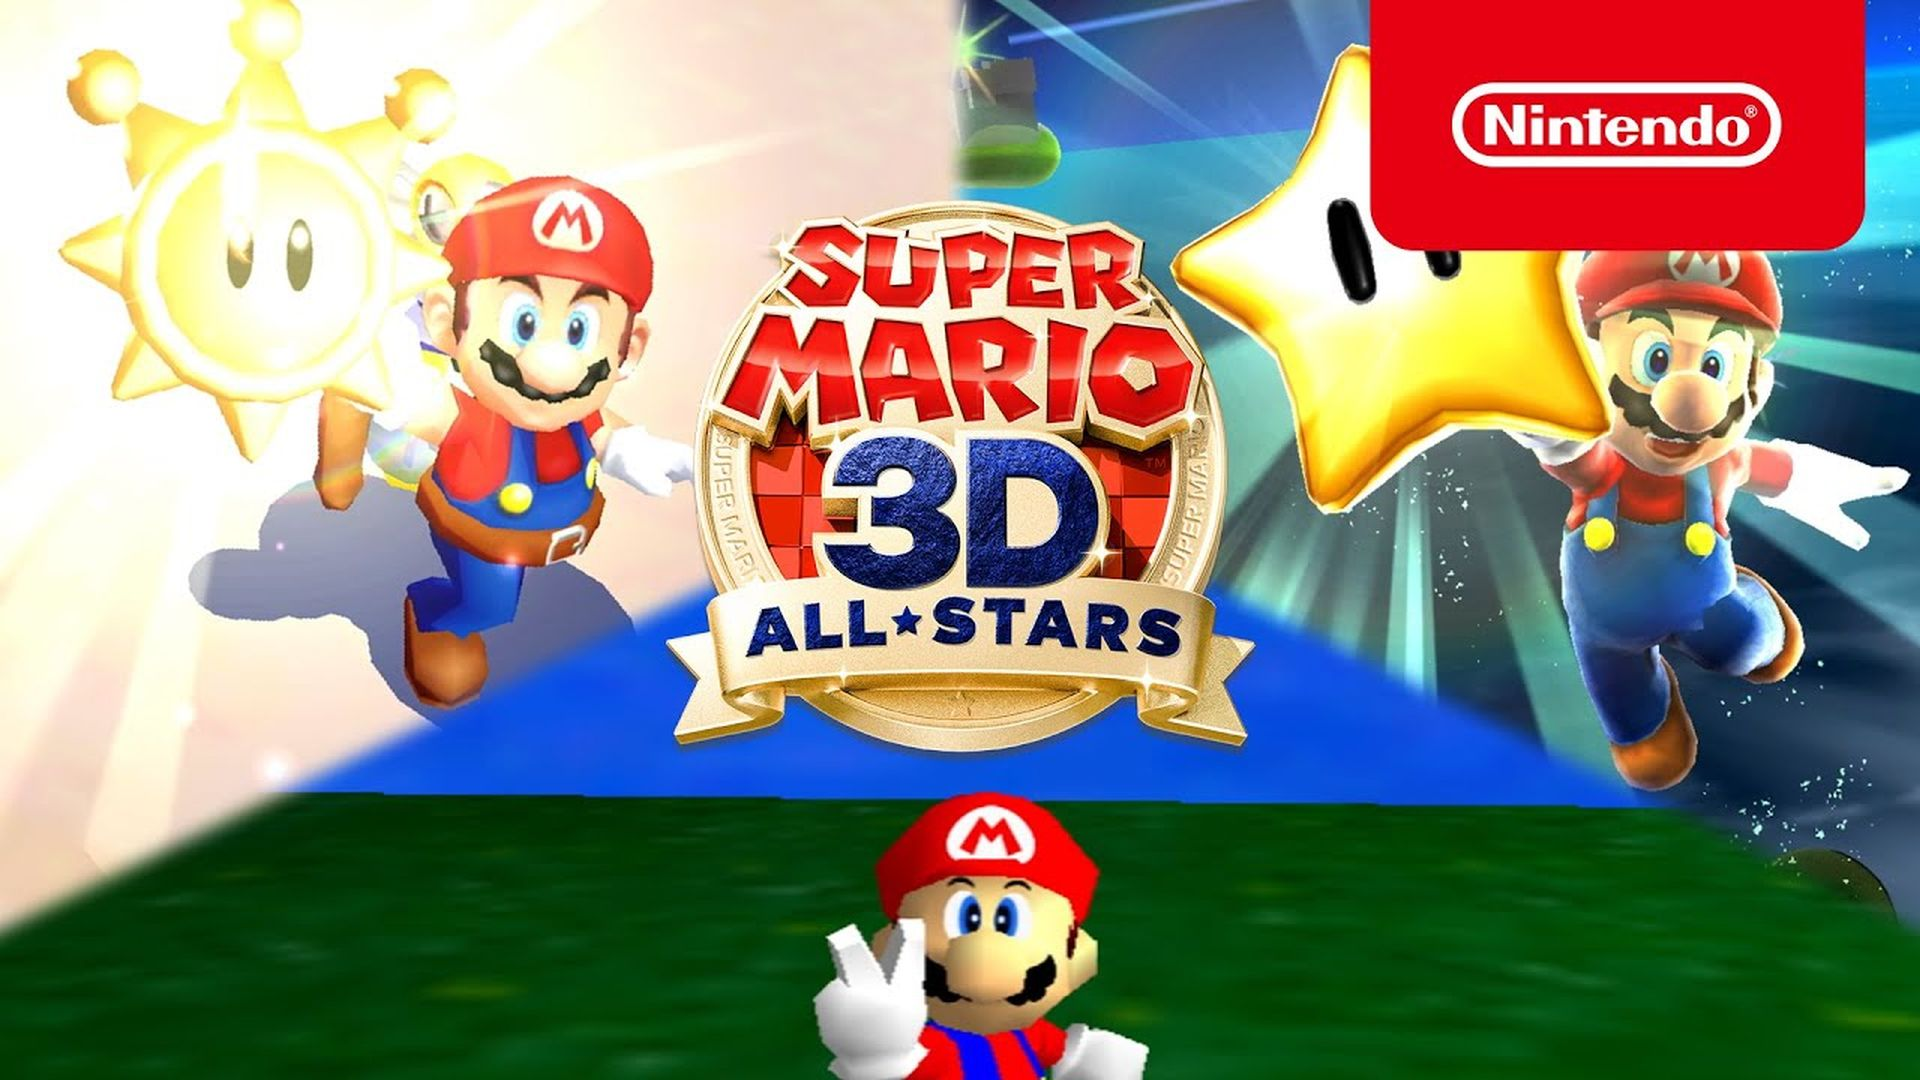 Super Mario 3D All-Stars Announced, Out on September 18th for Switch